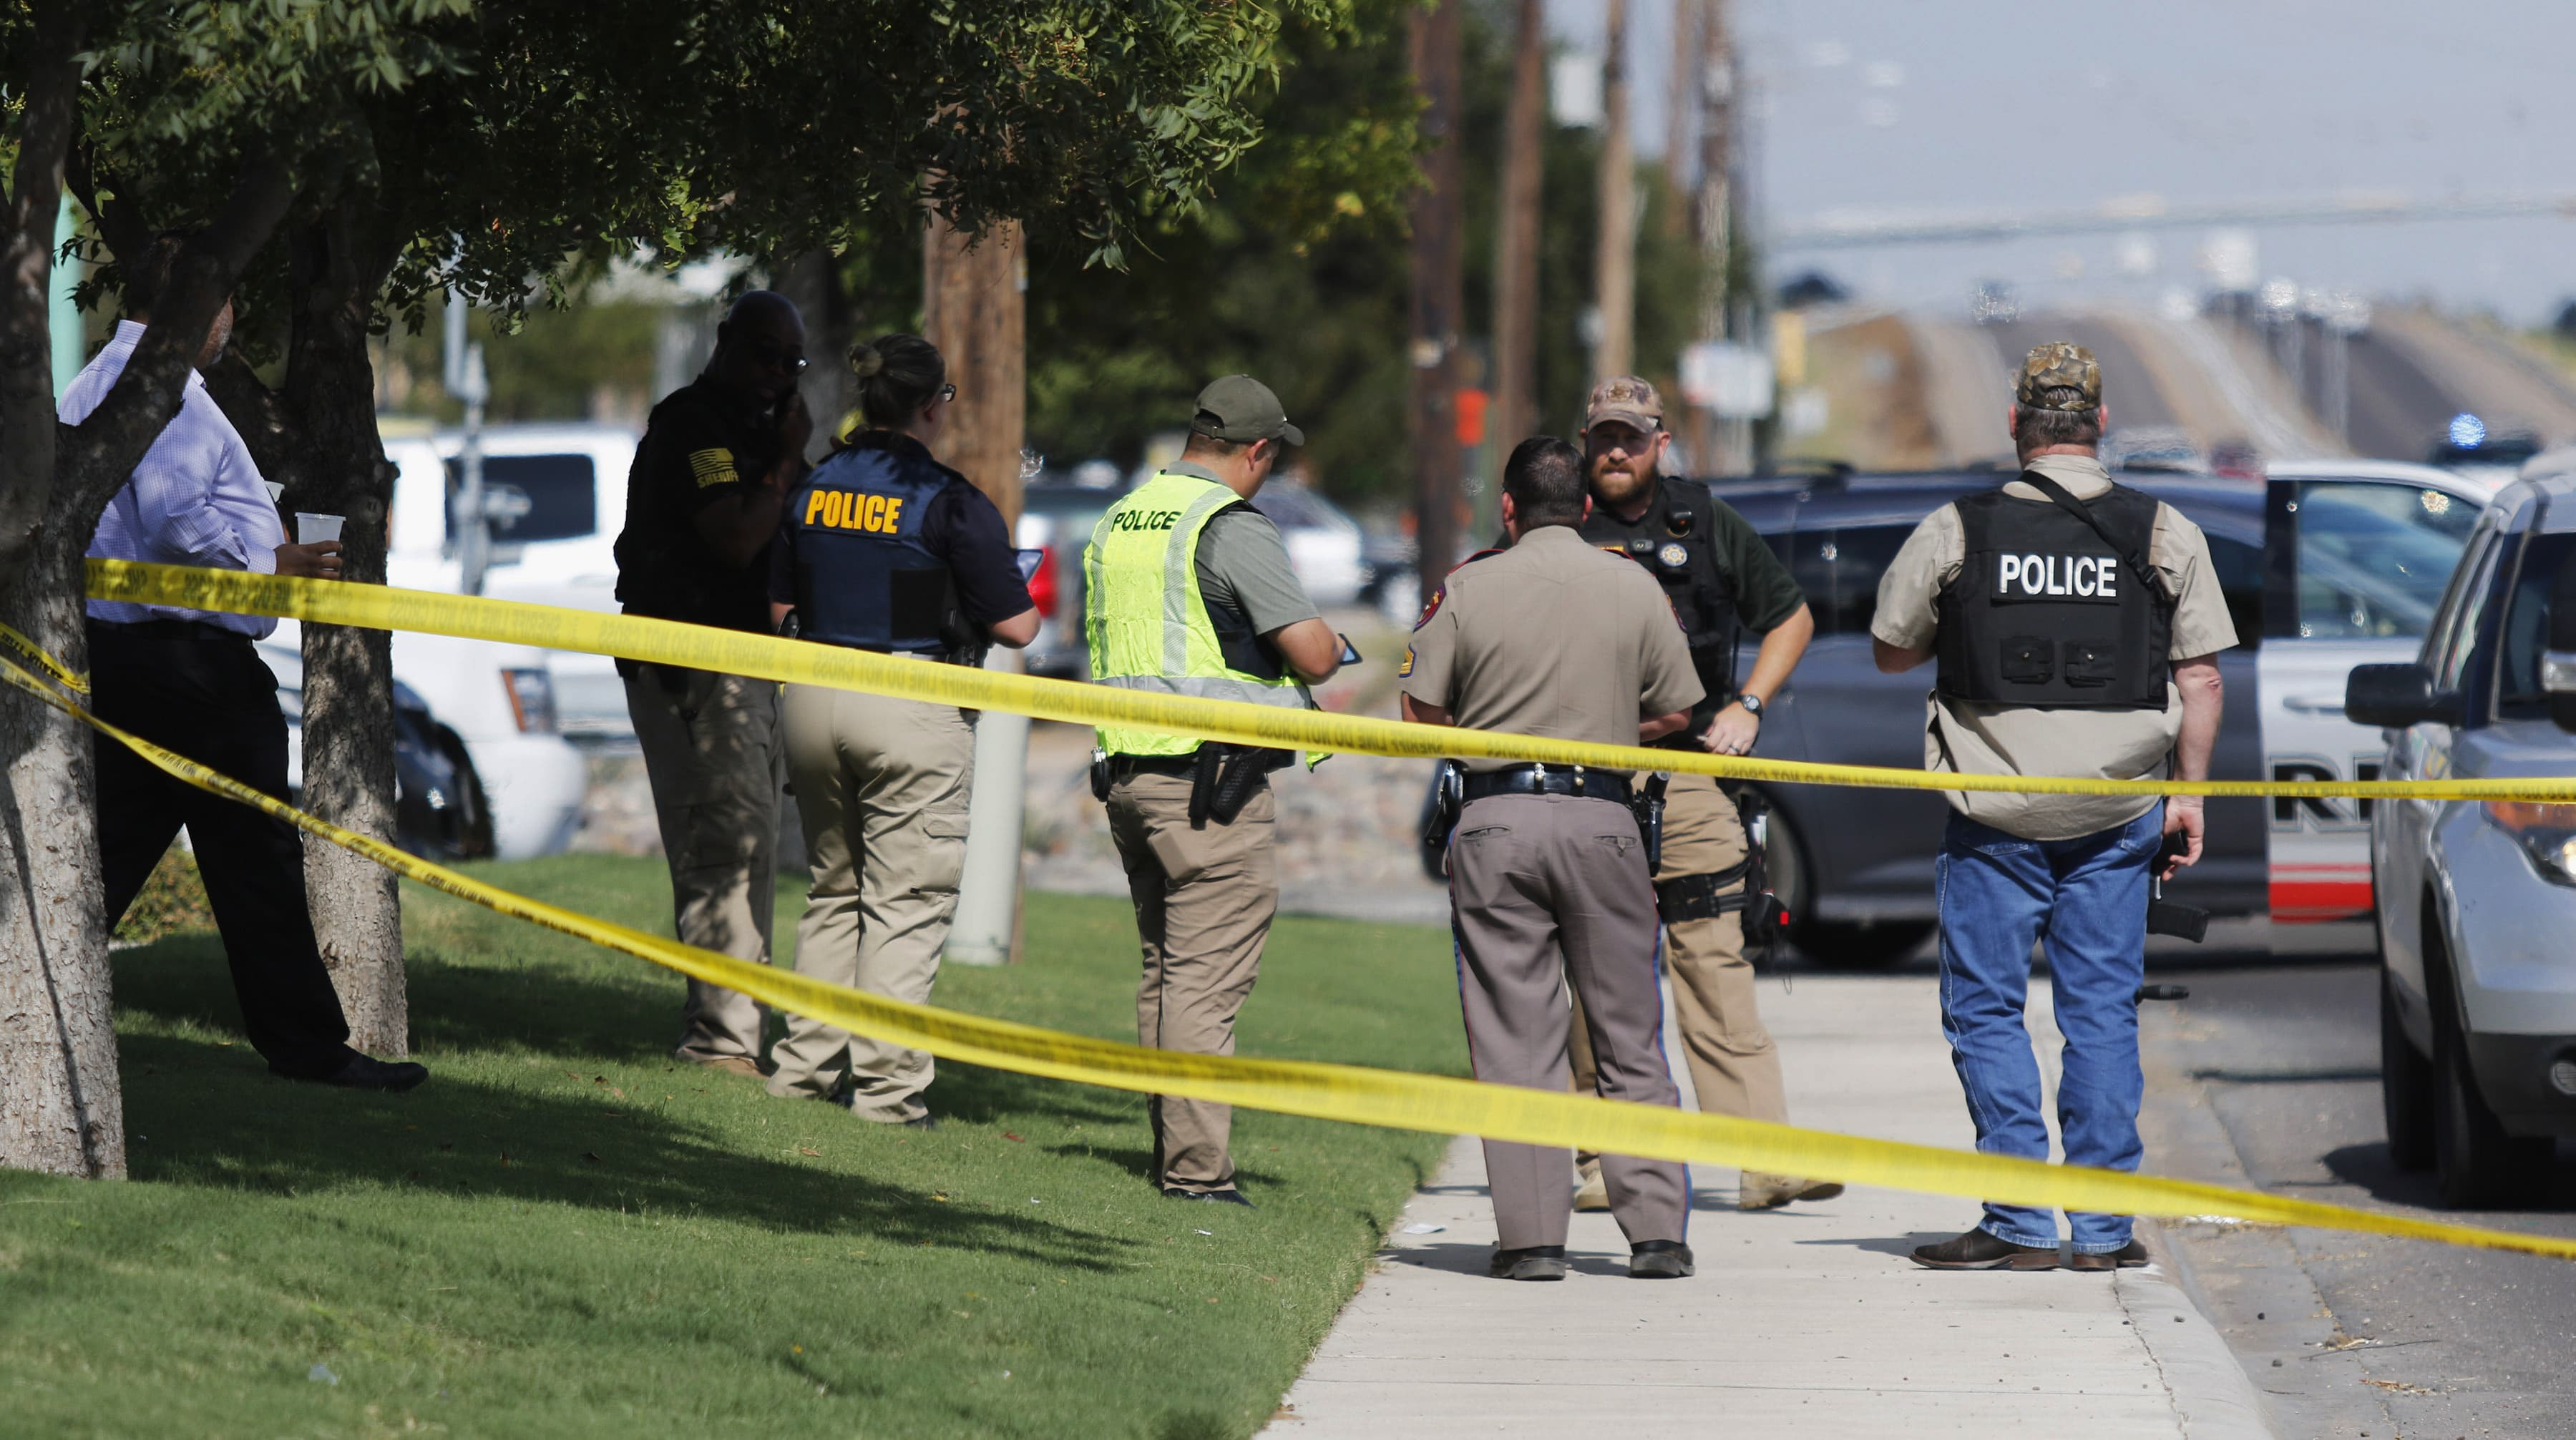 Death toll rises to 7 in West Texas shooting rampage